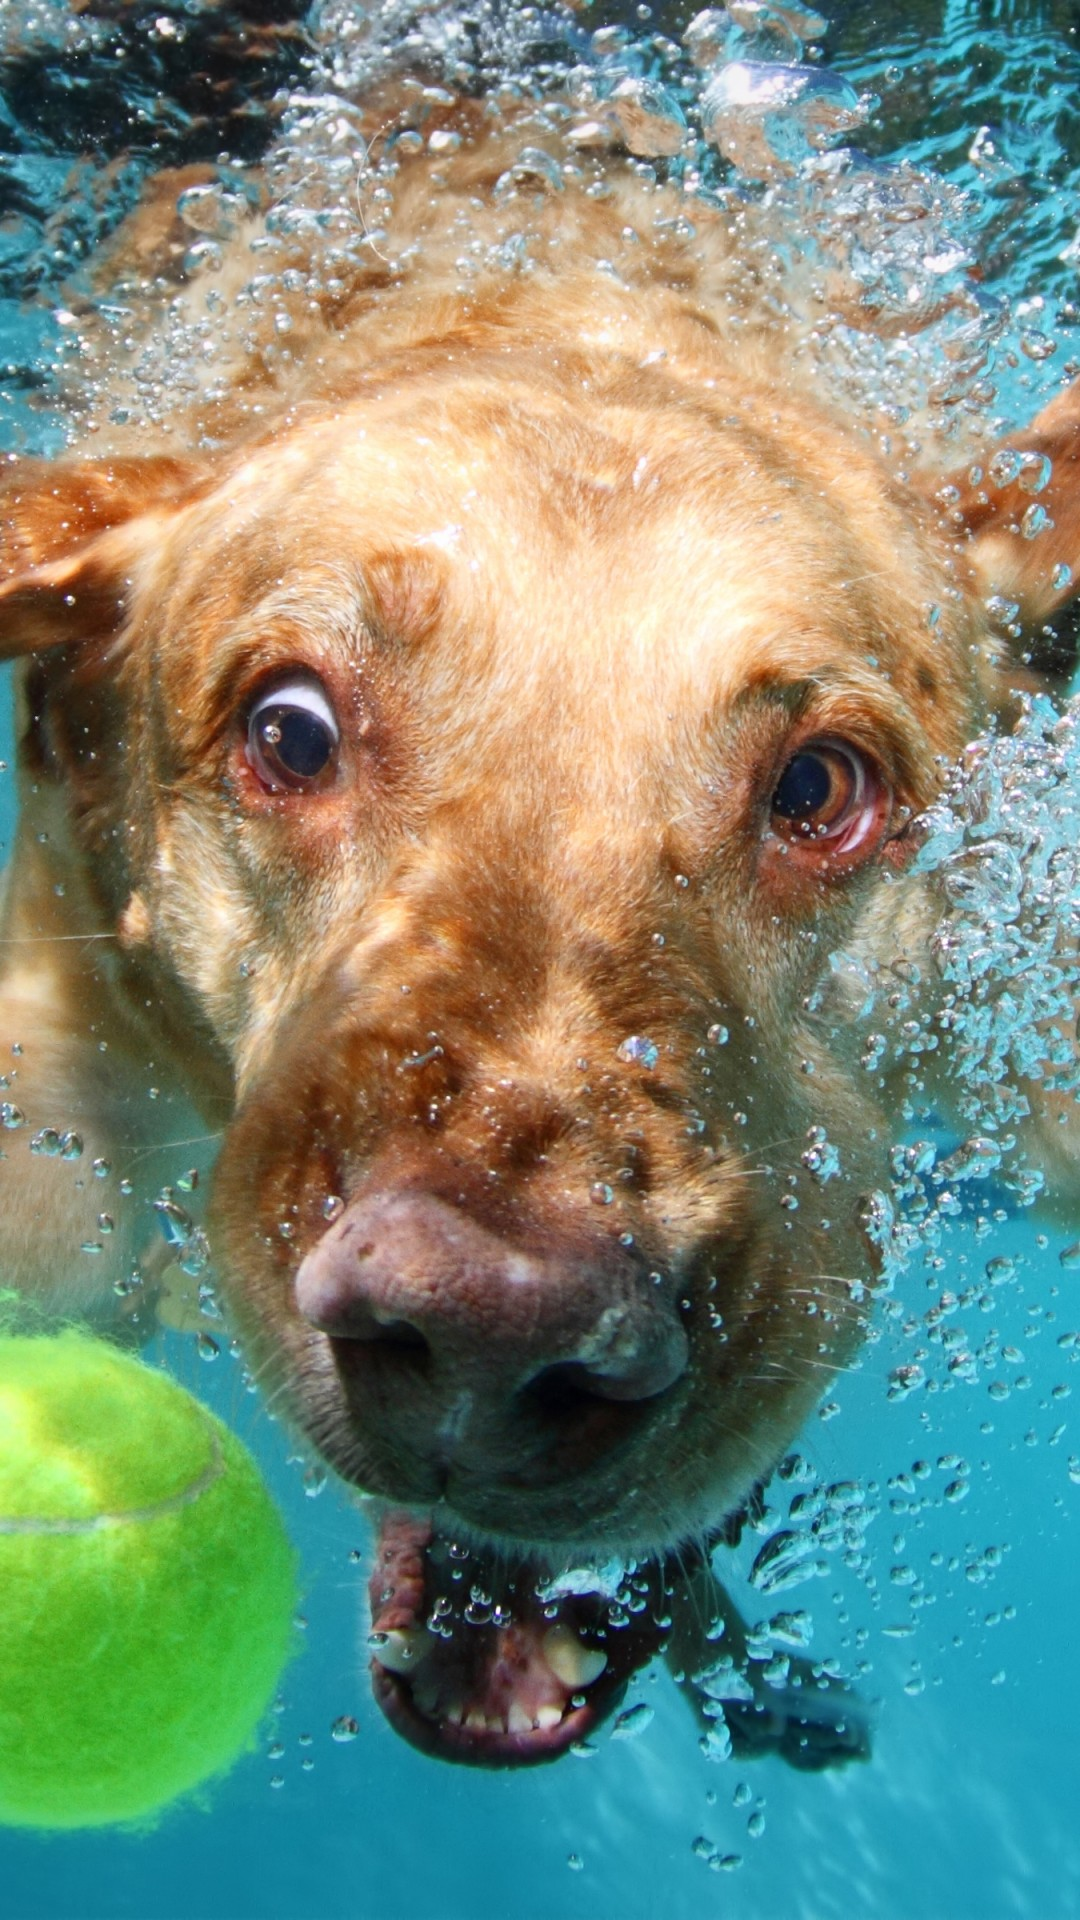 Cute Quotes Wallpapers Pinterest Wallpaper Labrador Dog Underwater Cute Animals Funny